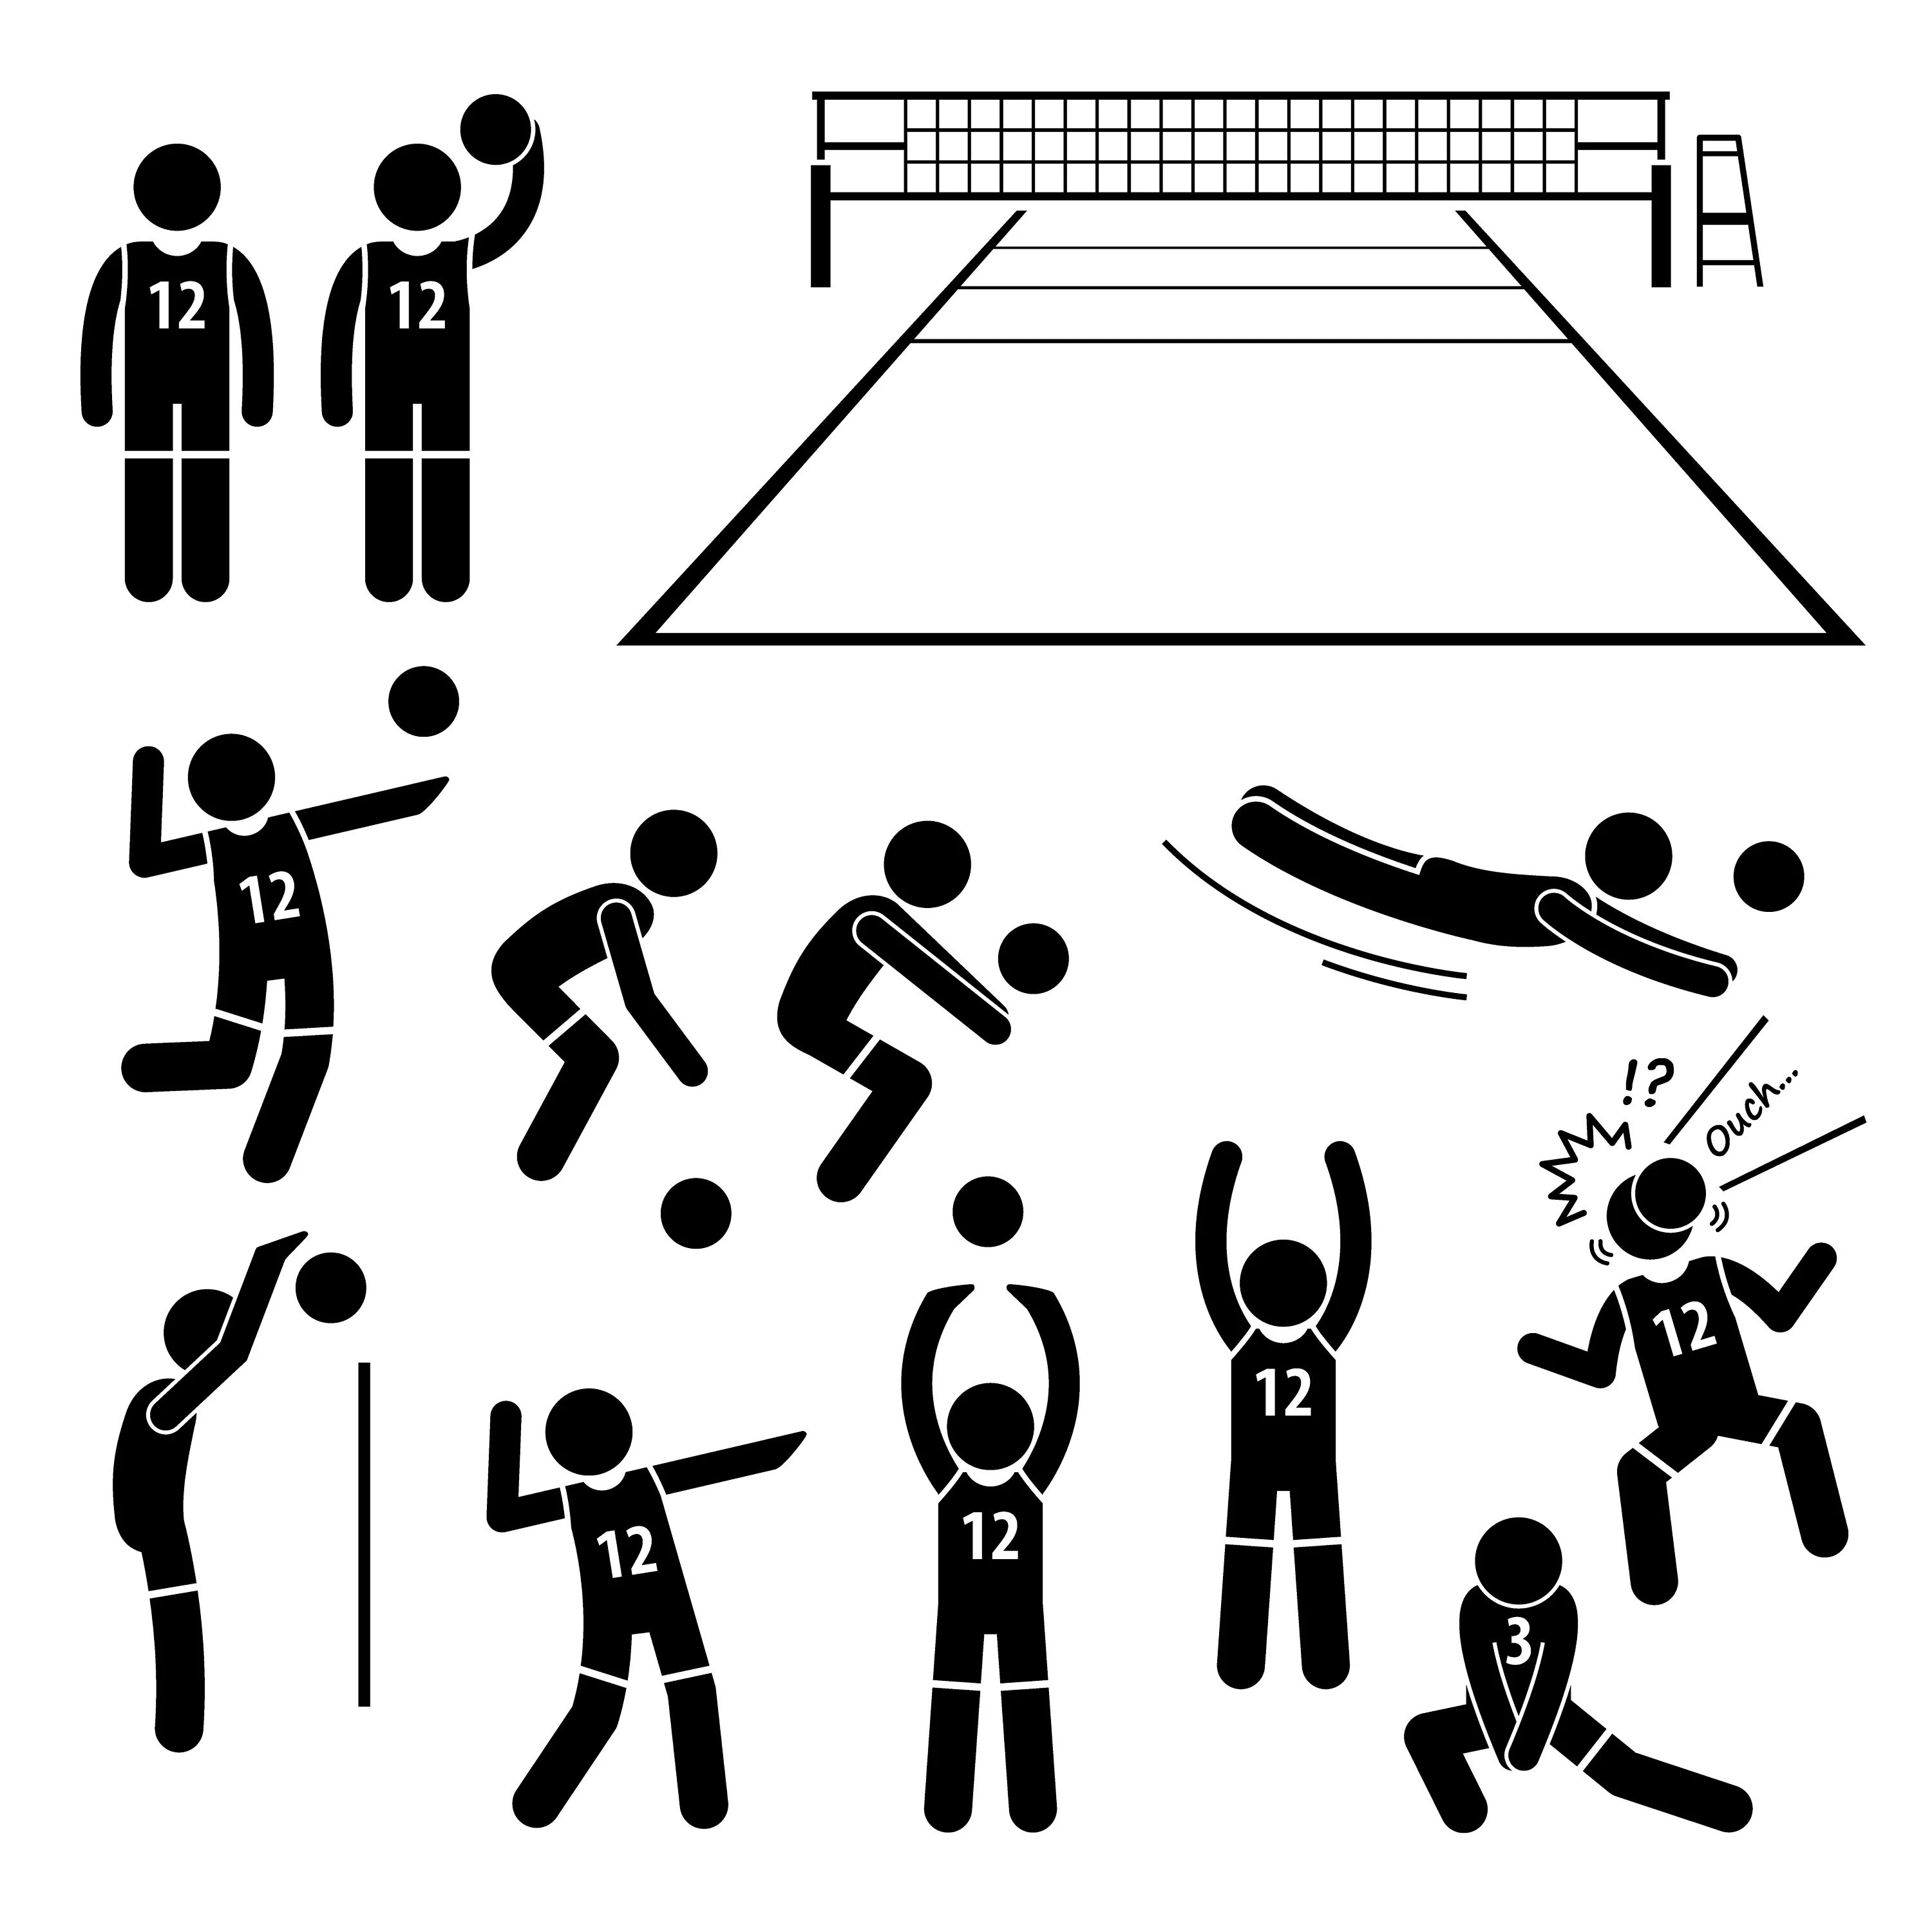 Volleyball Player Sport Athlete Actions Poses Postures